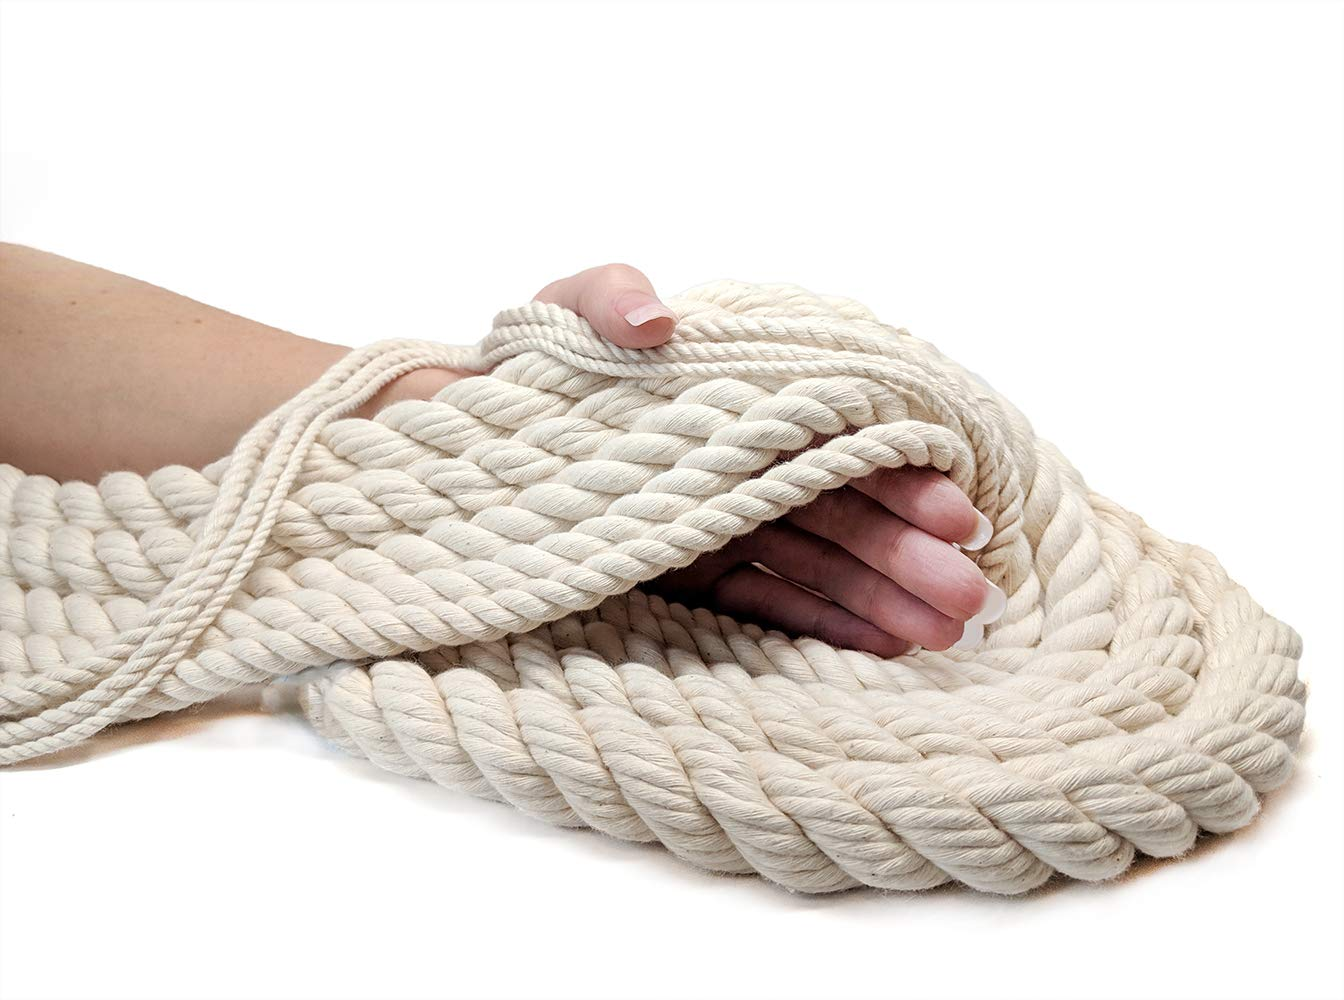 Ravenox 100% Cotton Twisted Rope | (White)(3/8 in x 100 ft) |USA Made Natural Cord | Baker & Butchers Twine, Macramé, Knotting, Crafts, Pet Toys